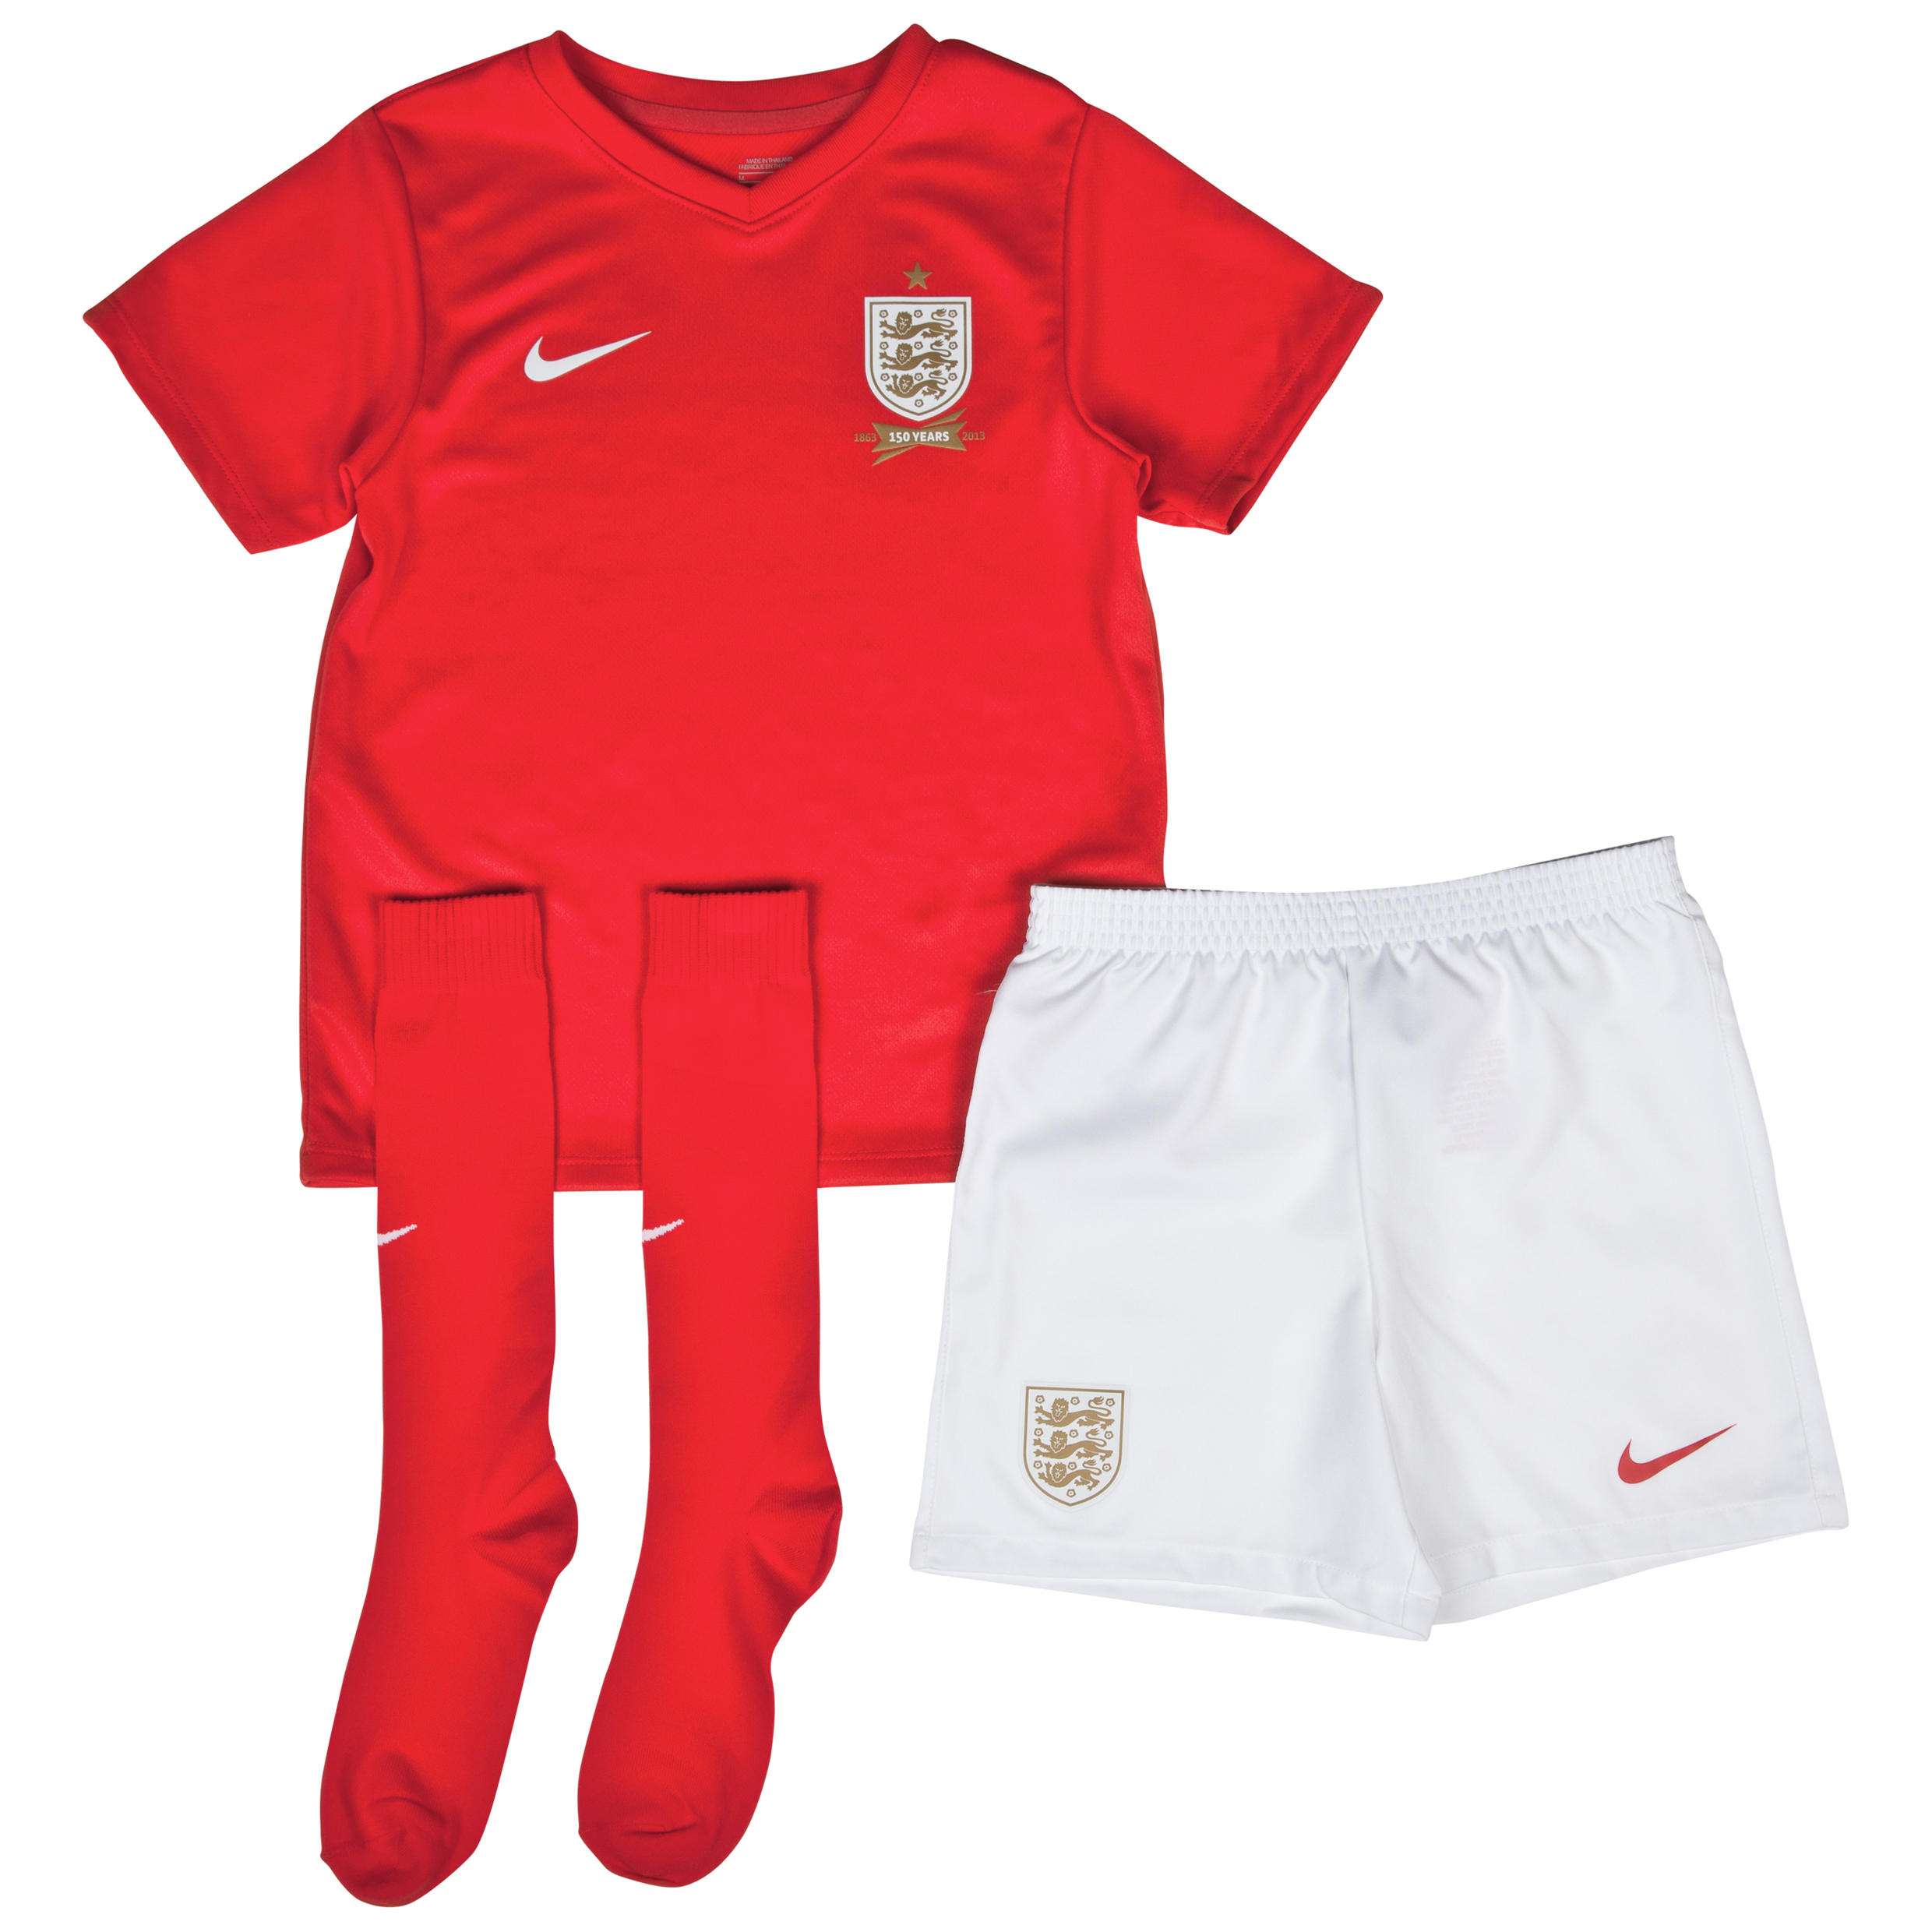 England Away Kit 2013/14 - Little Boys Red